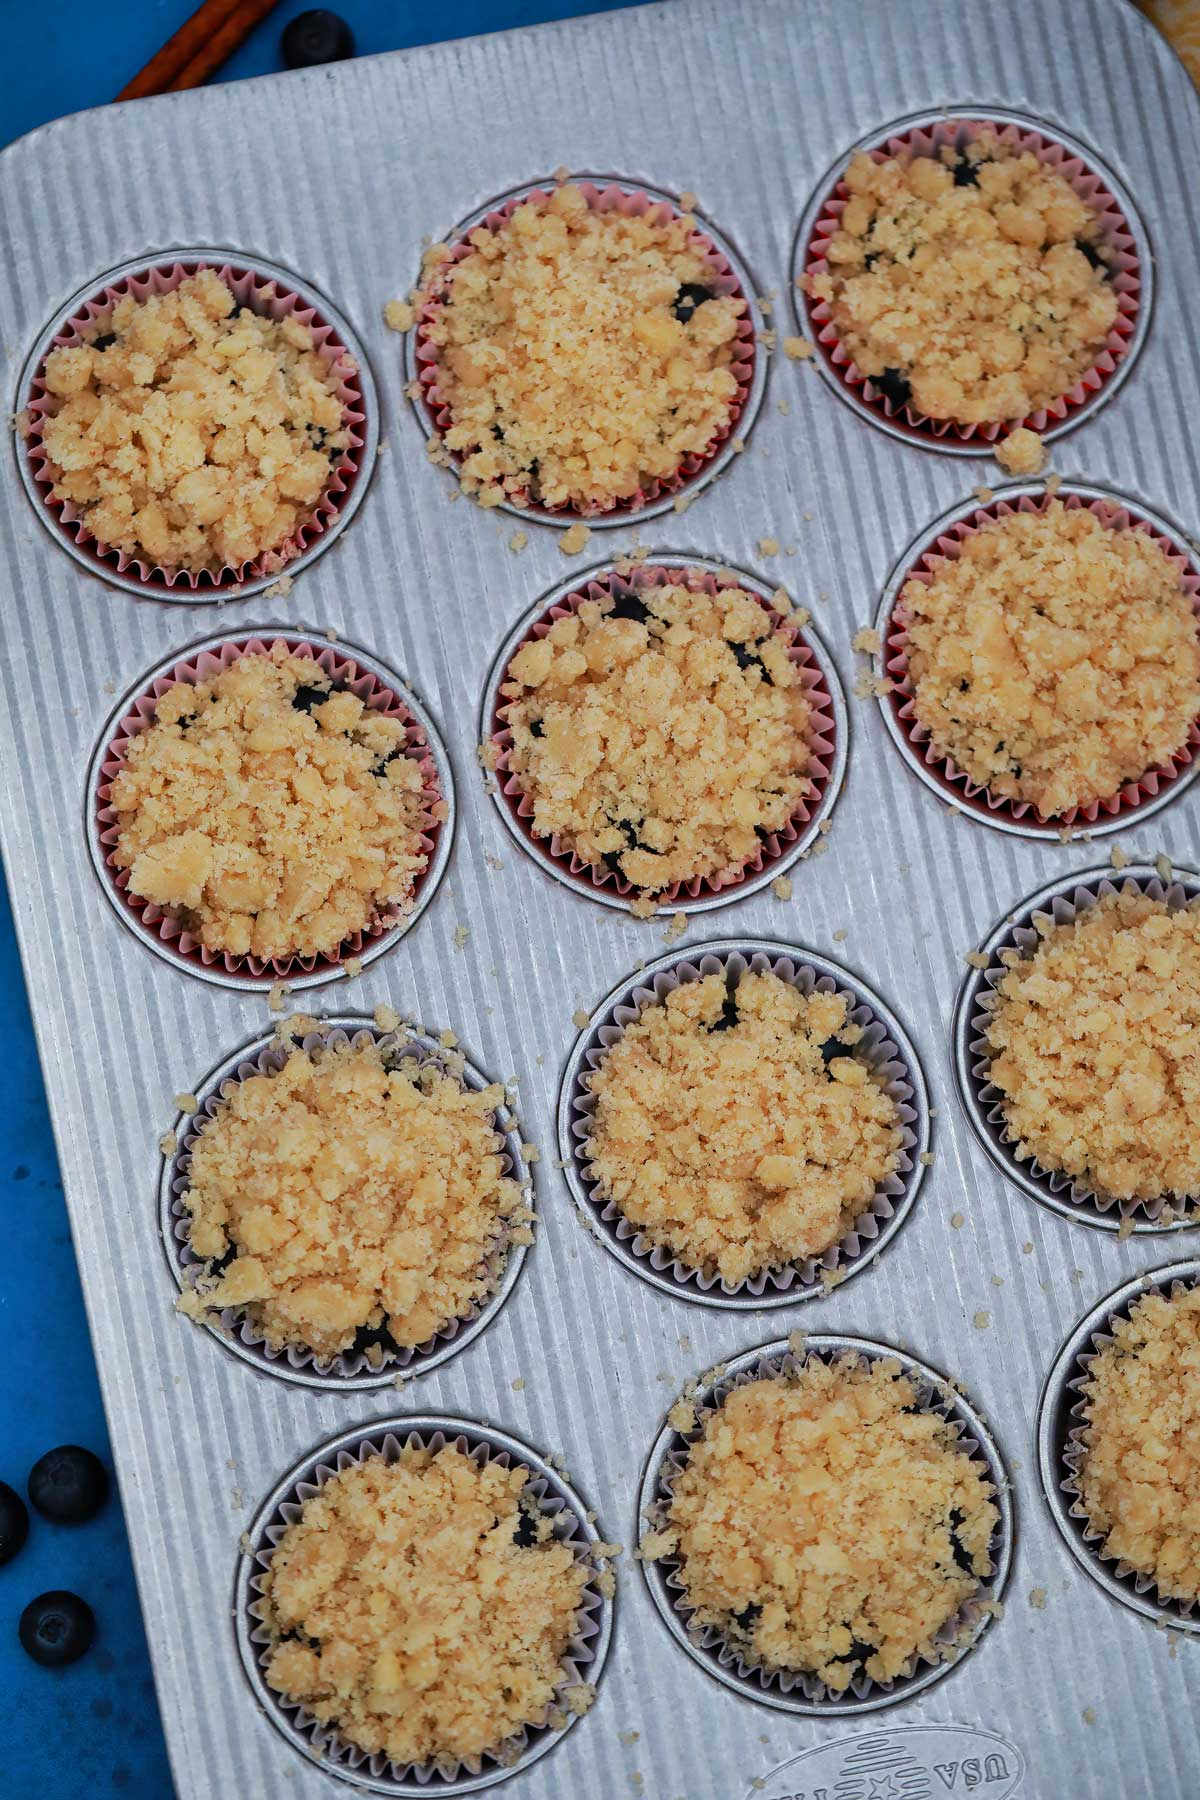 Muffins ready for oven